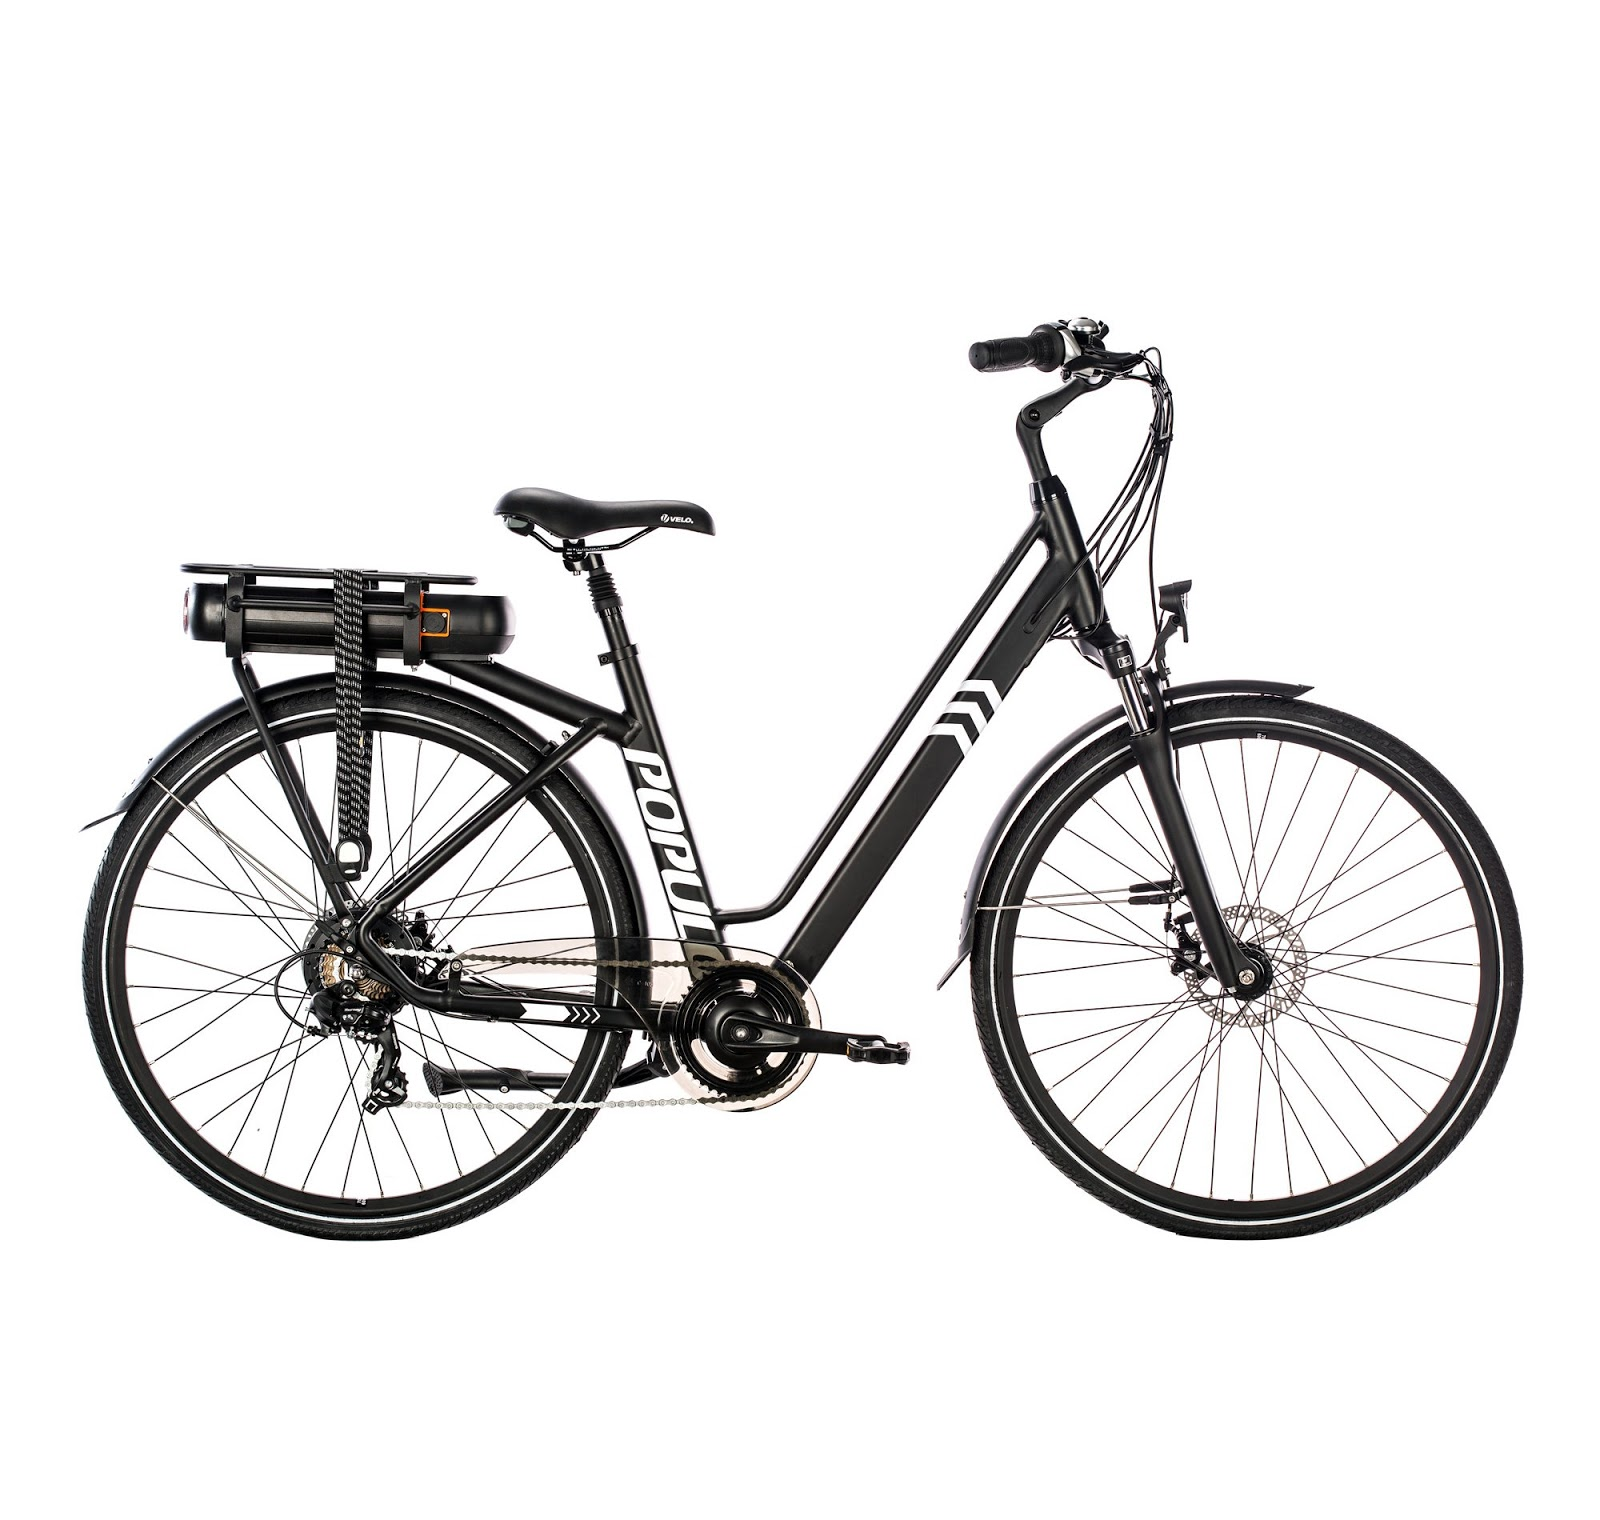 Bumsteads Road And Mountain Bikes Populo Lift Electric